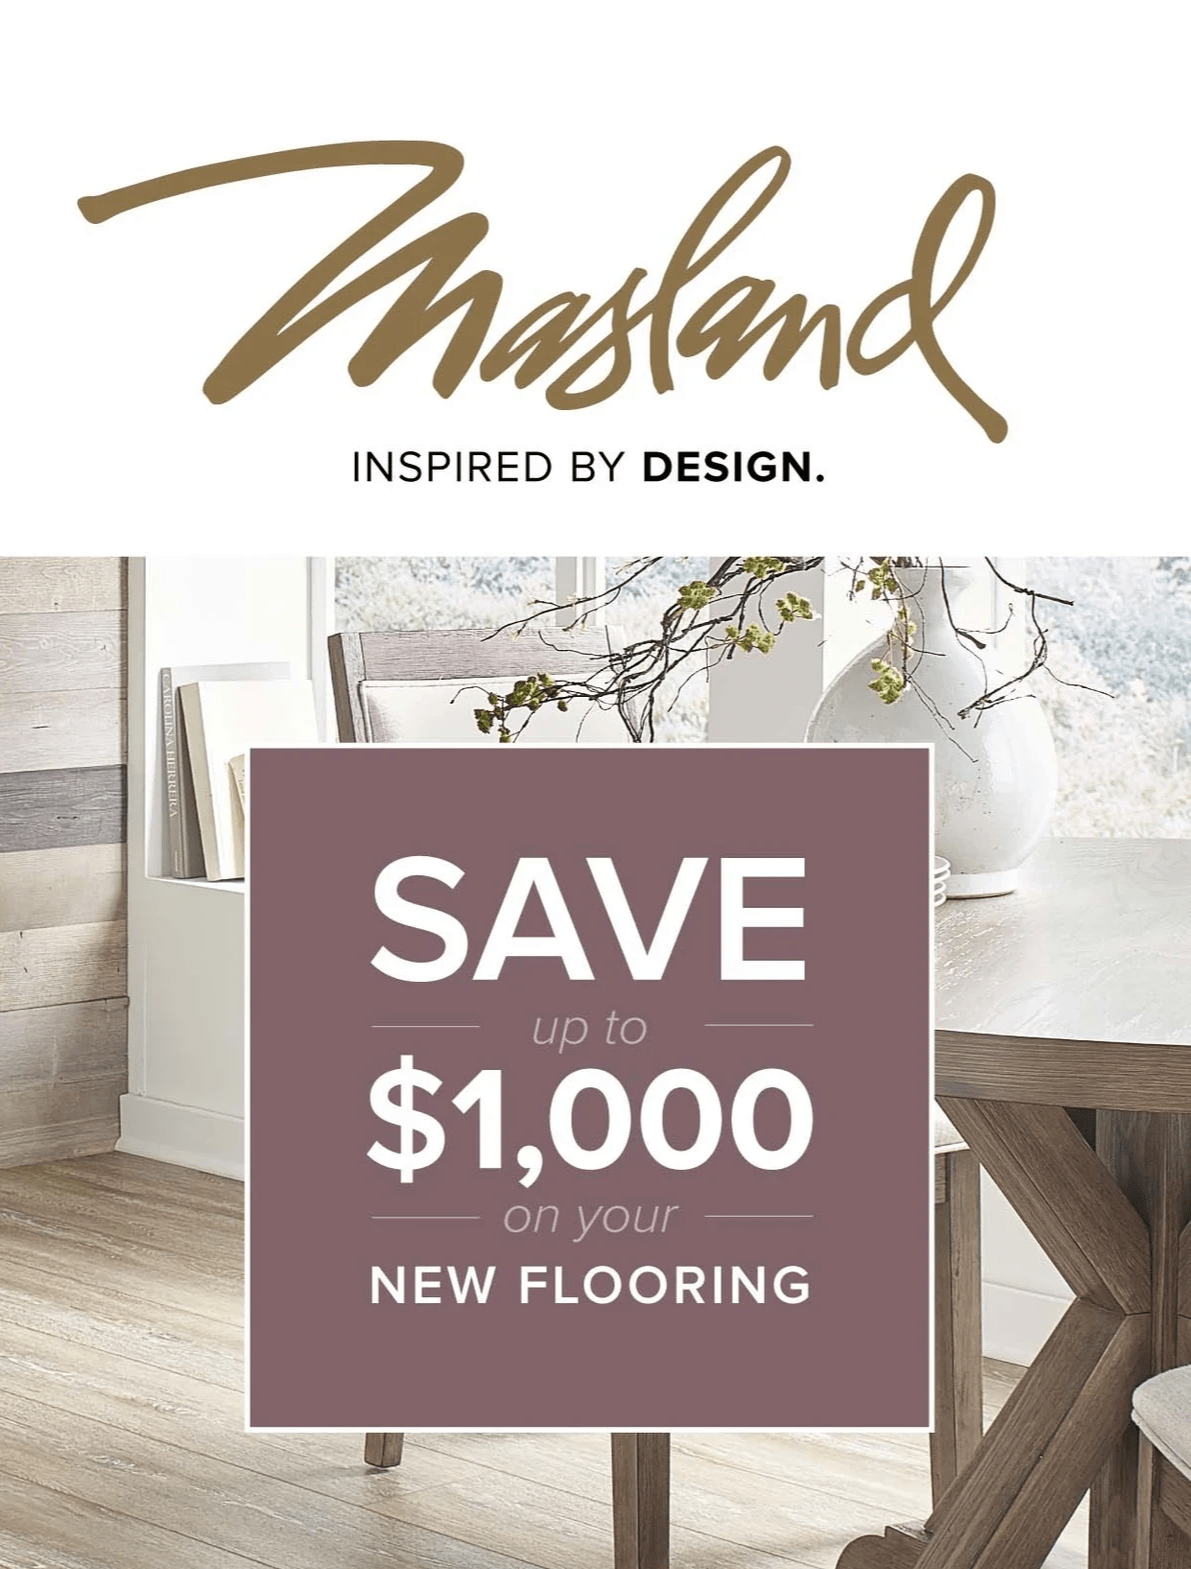 Masland flooring, save up to $,1000 on new flooring